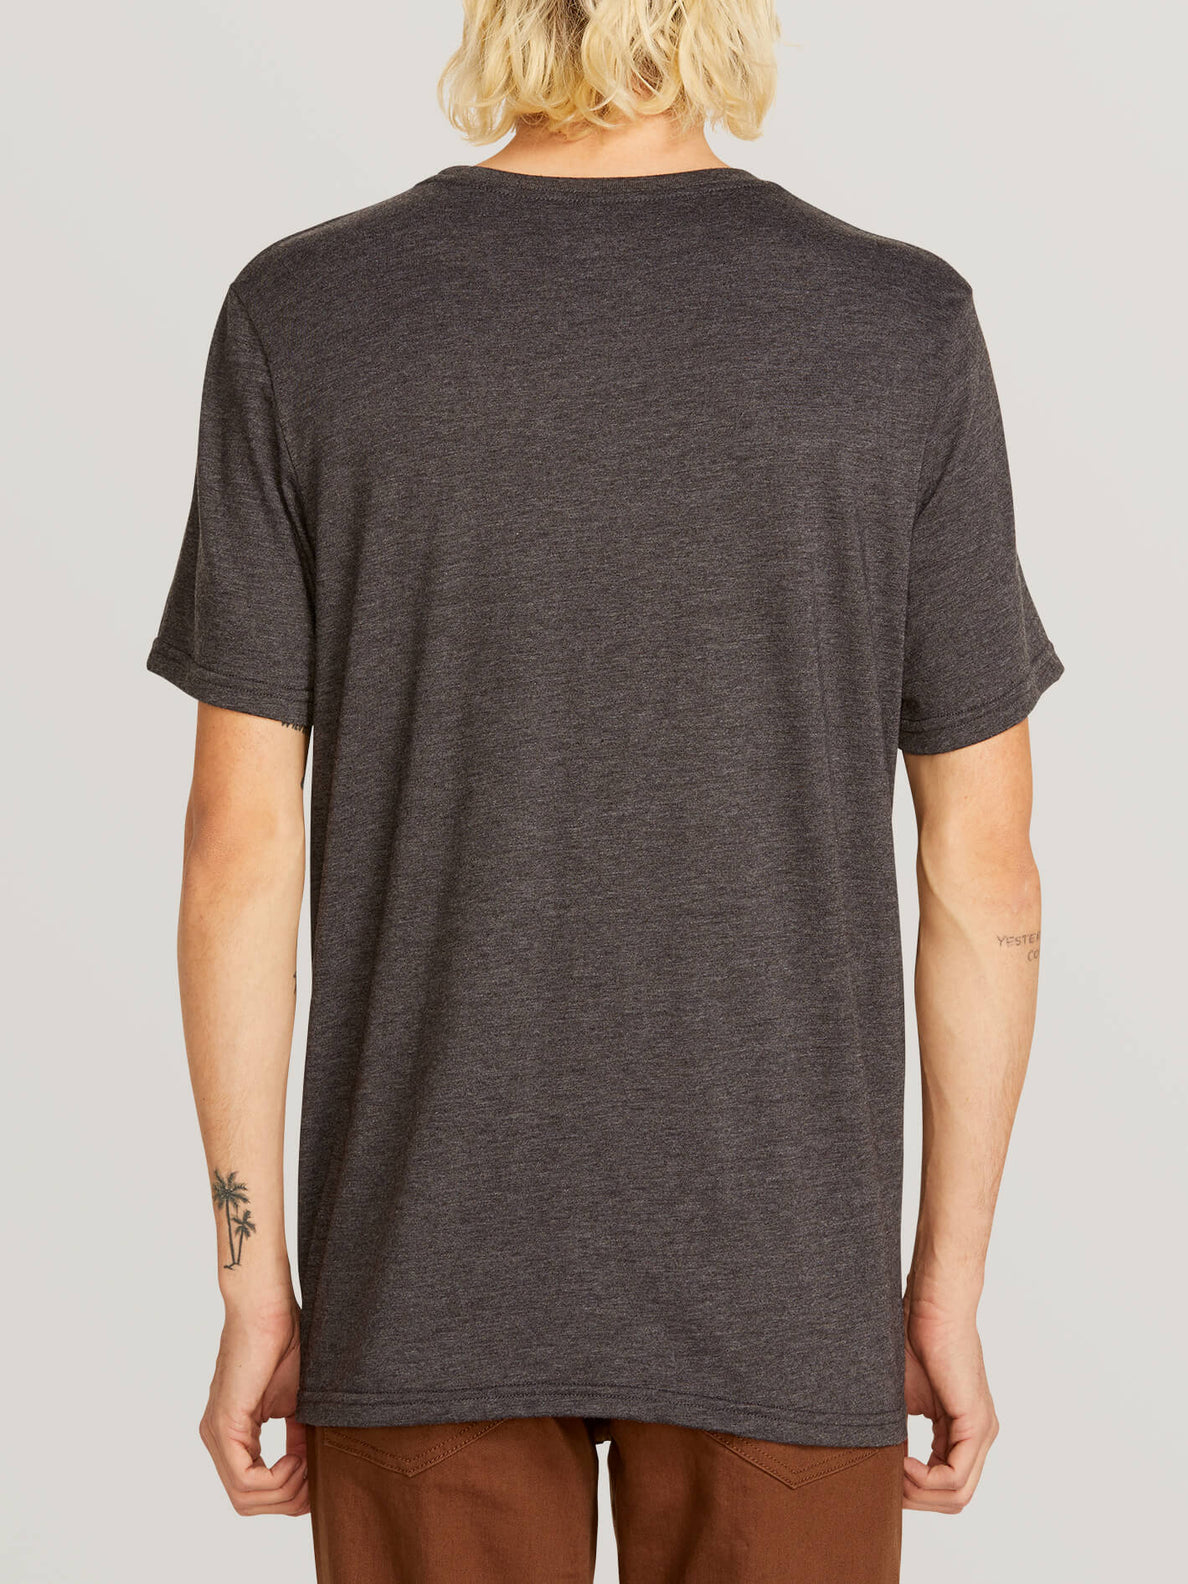 Chop Around Short Sleeve Tee In Heather Black, Back View